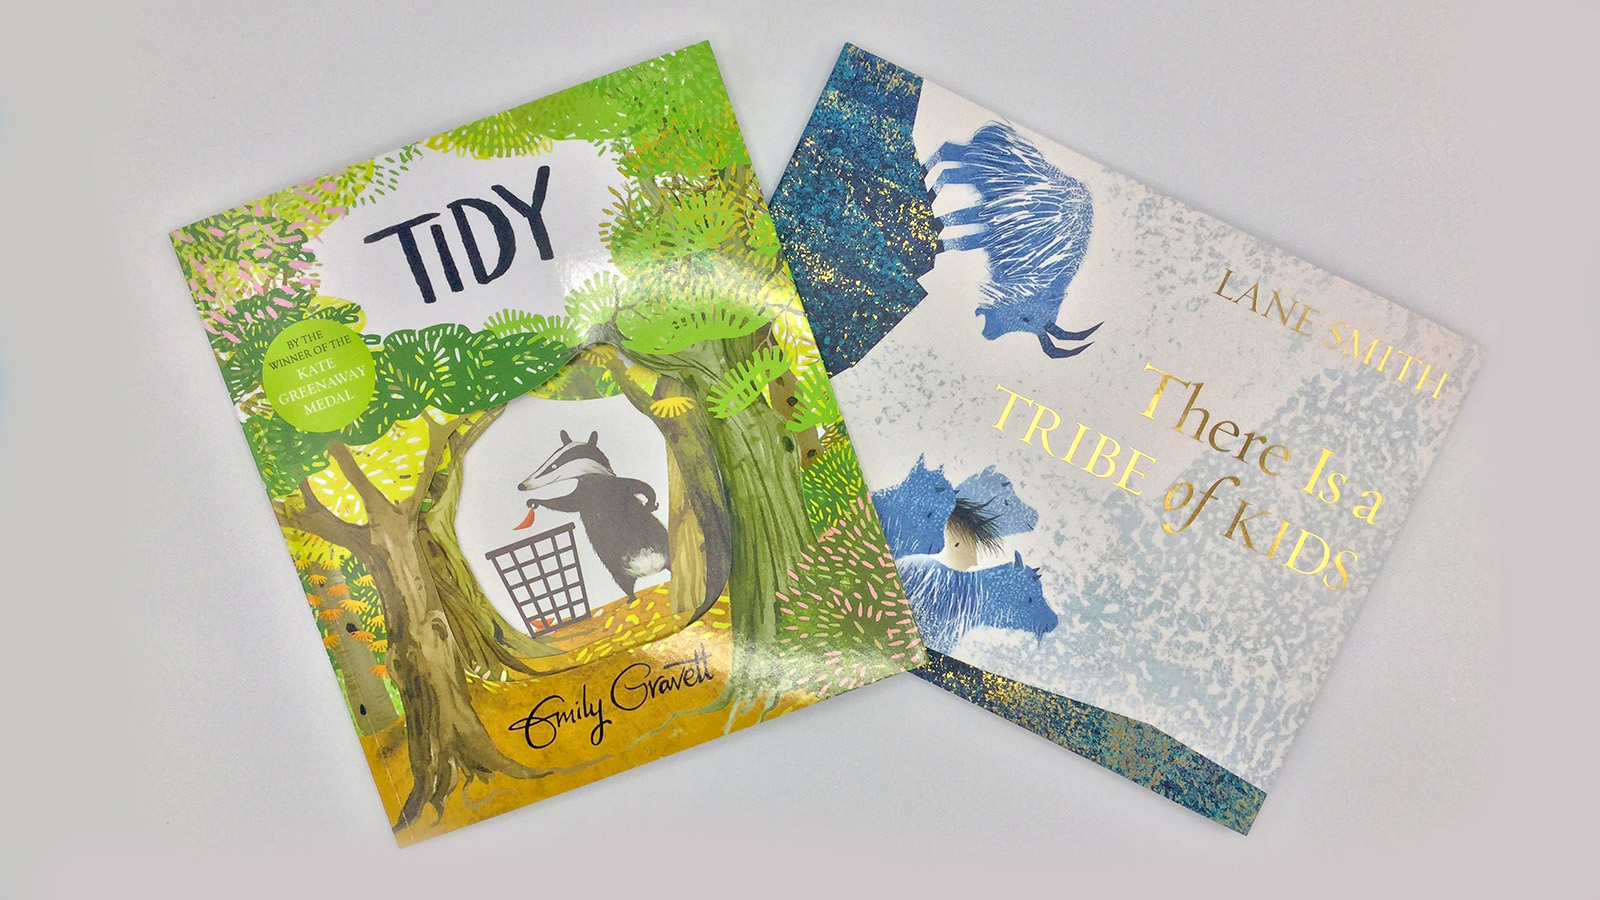 Two Hoots on Kate Greenaway Shortlist